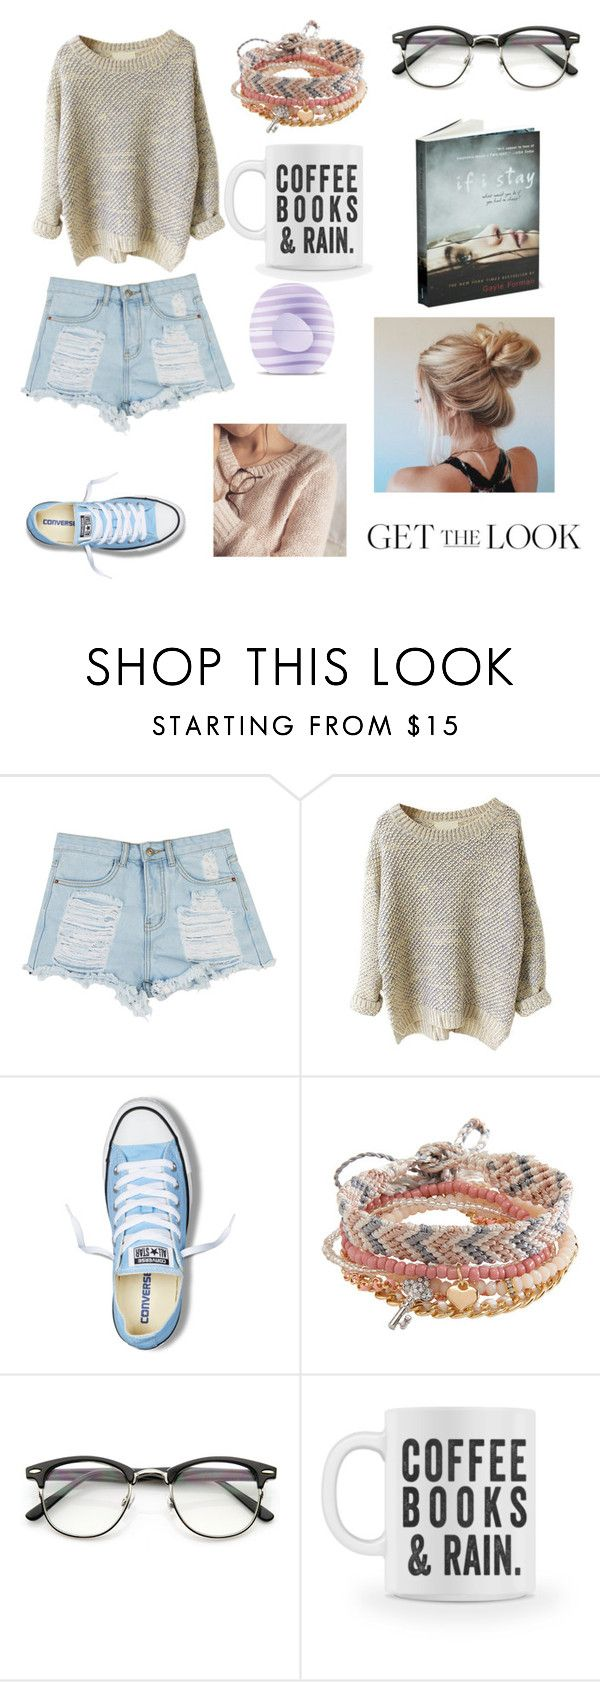 """""""Total was 148.46,including book and mug"""" by madisonpeters00 ❤ liked on Polyvore featuring Converse, Aéropostale and Eos"""